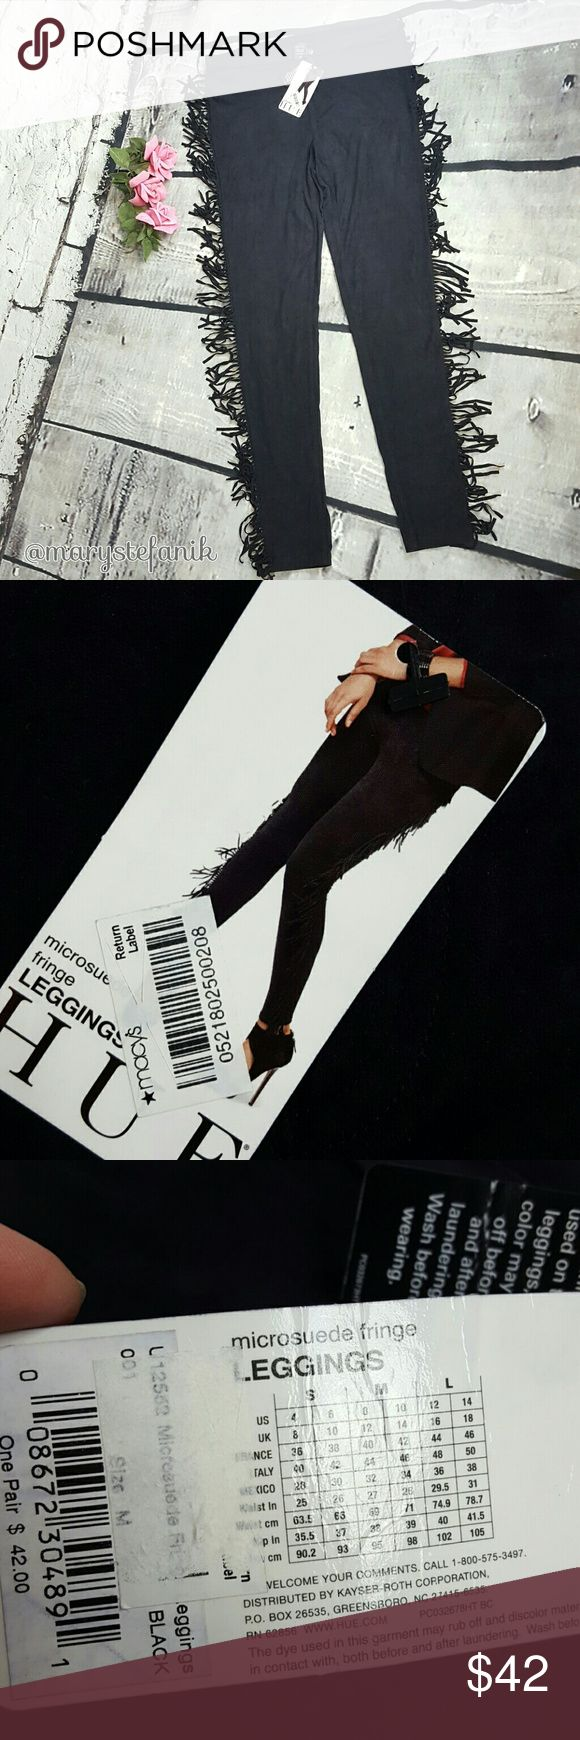 {New} Hue Black Fringe Micro Suede Leggings M {New} Hue Black Fringe Micro Suede Leggings size M. NWT. New with tags. Comfy and stylish!  Please let me know if you have any questions. Happy Poshing! HUE Pants Leggings